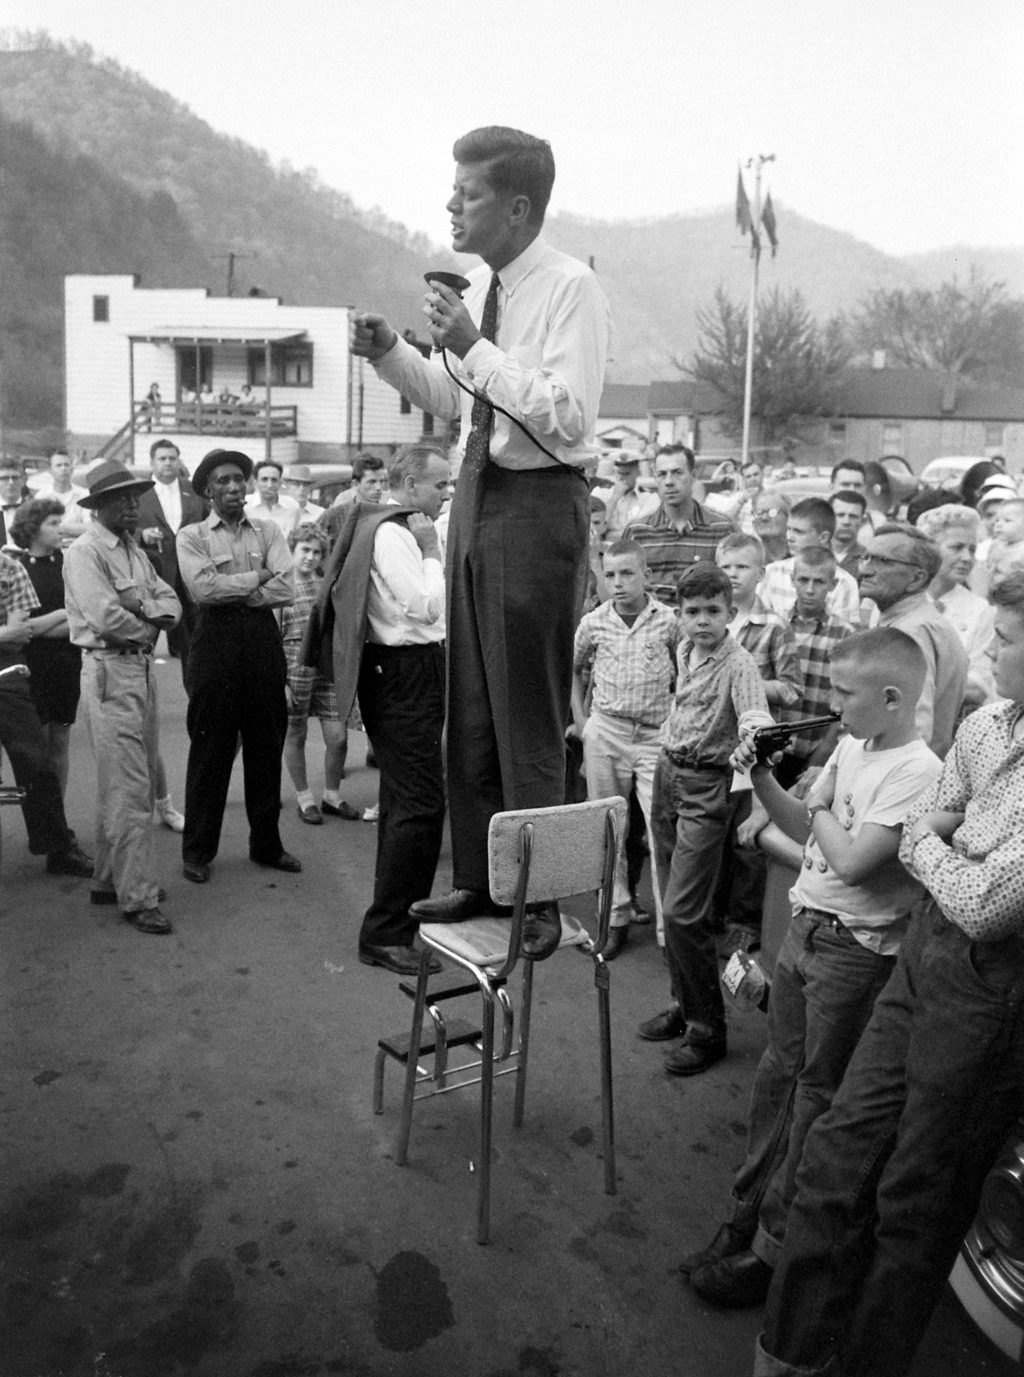 Before Camelot, a Visit to West Virginia. Photo by Hank Walker, 1960